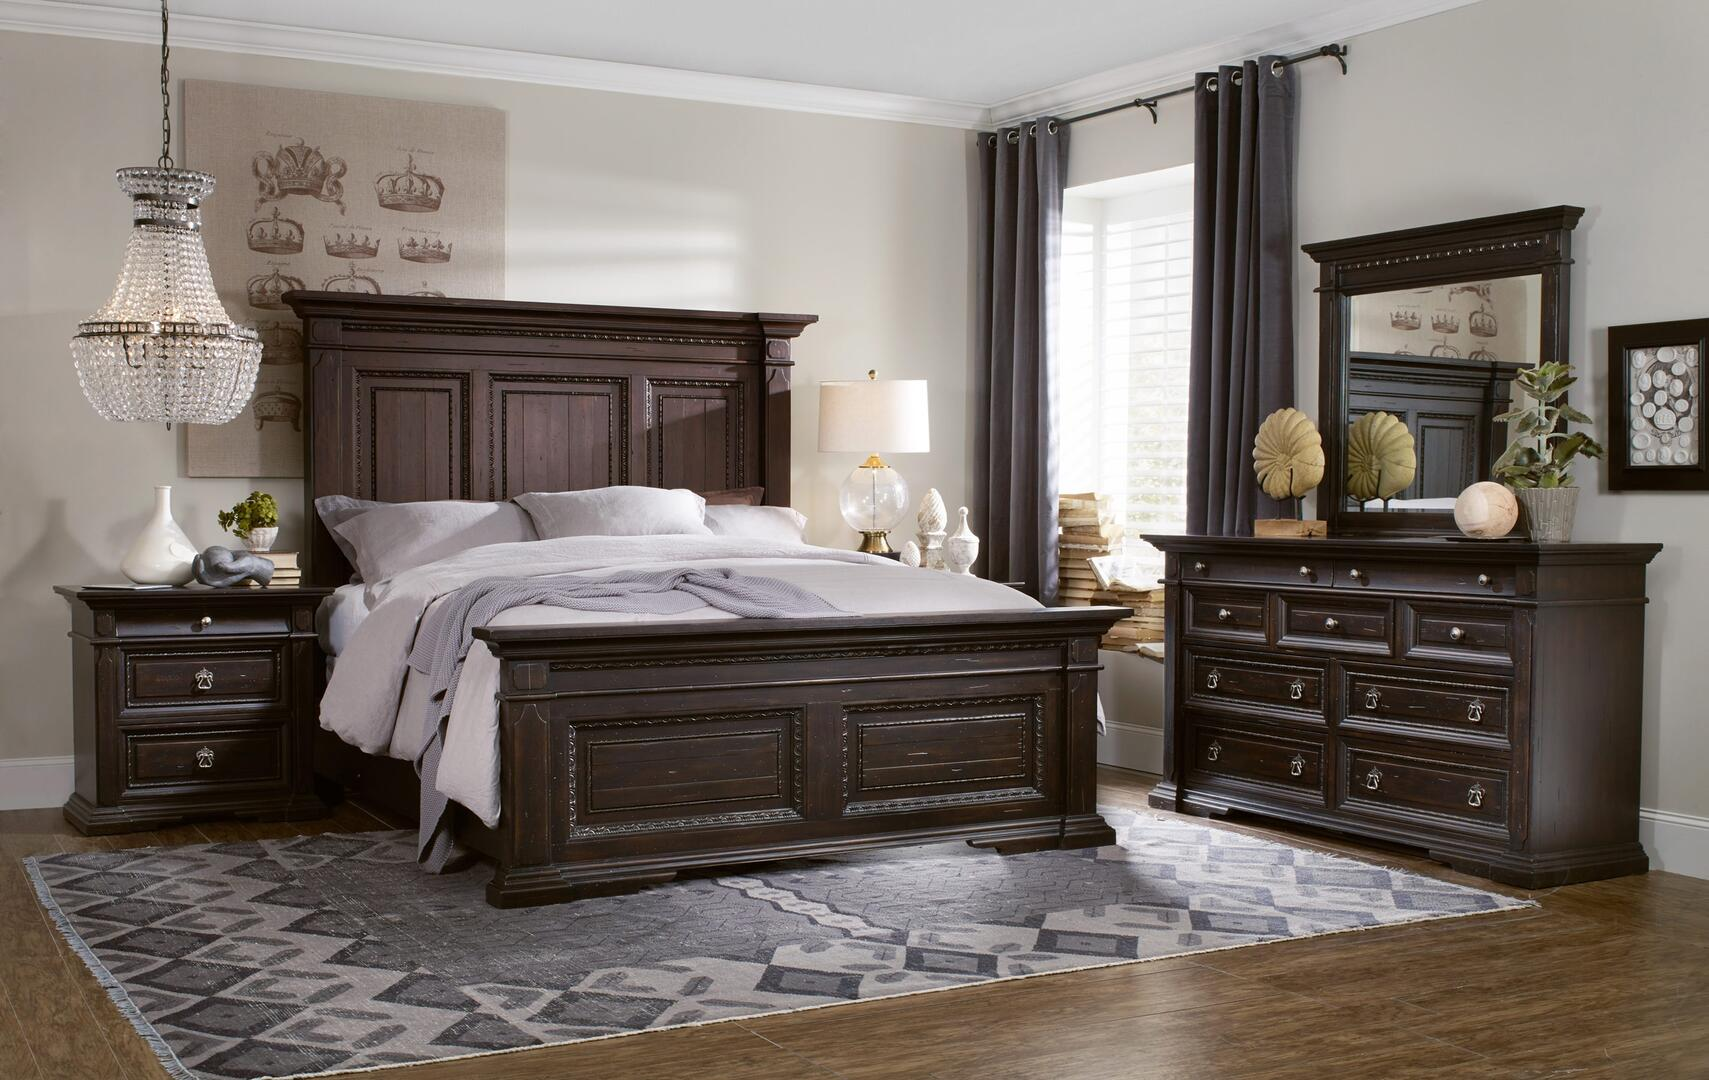 Hooker Furniture 537490266kspb2ndm Treviso King Bedroom Sets